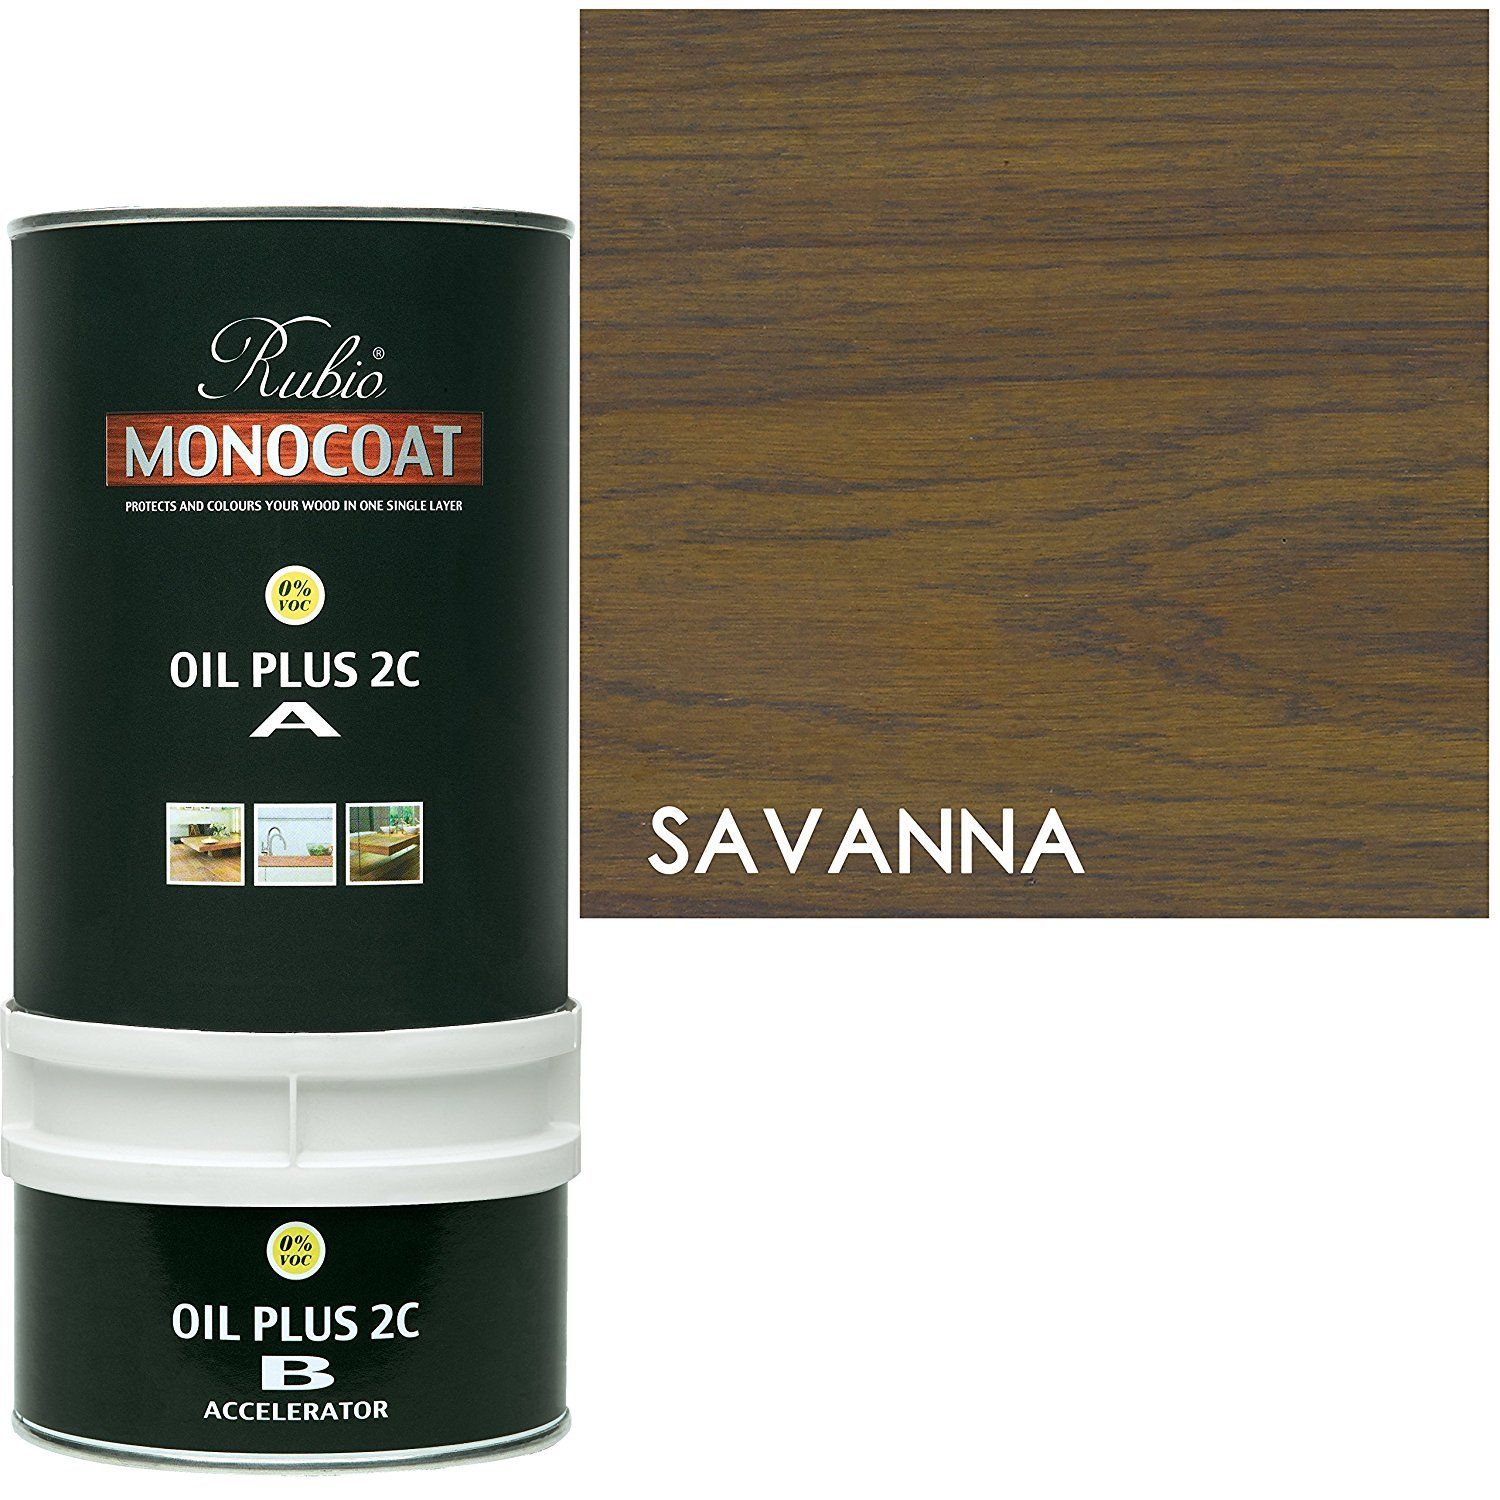 Rubio Monocoat Oil Plus 2C - Savanna